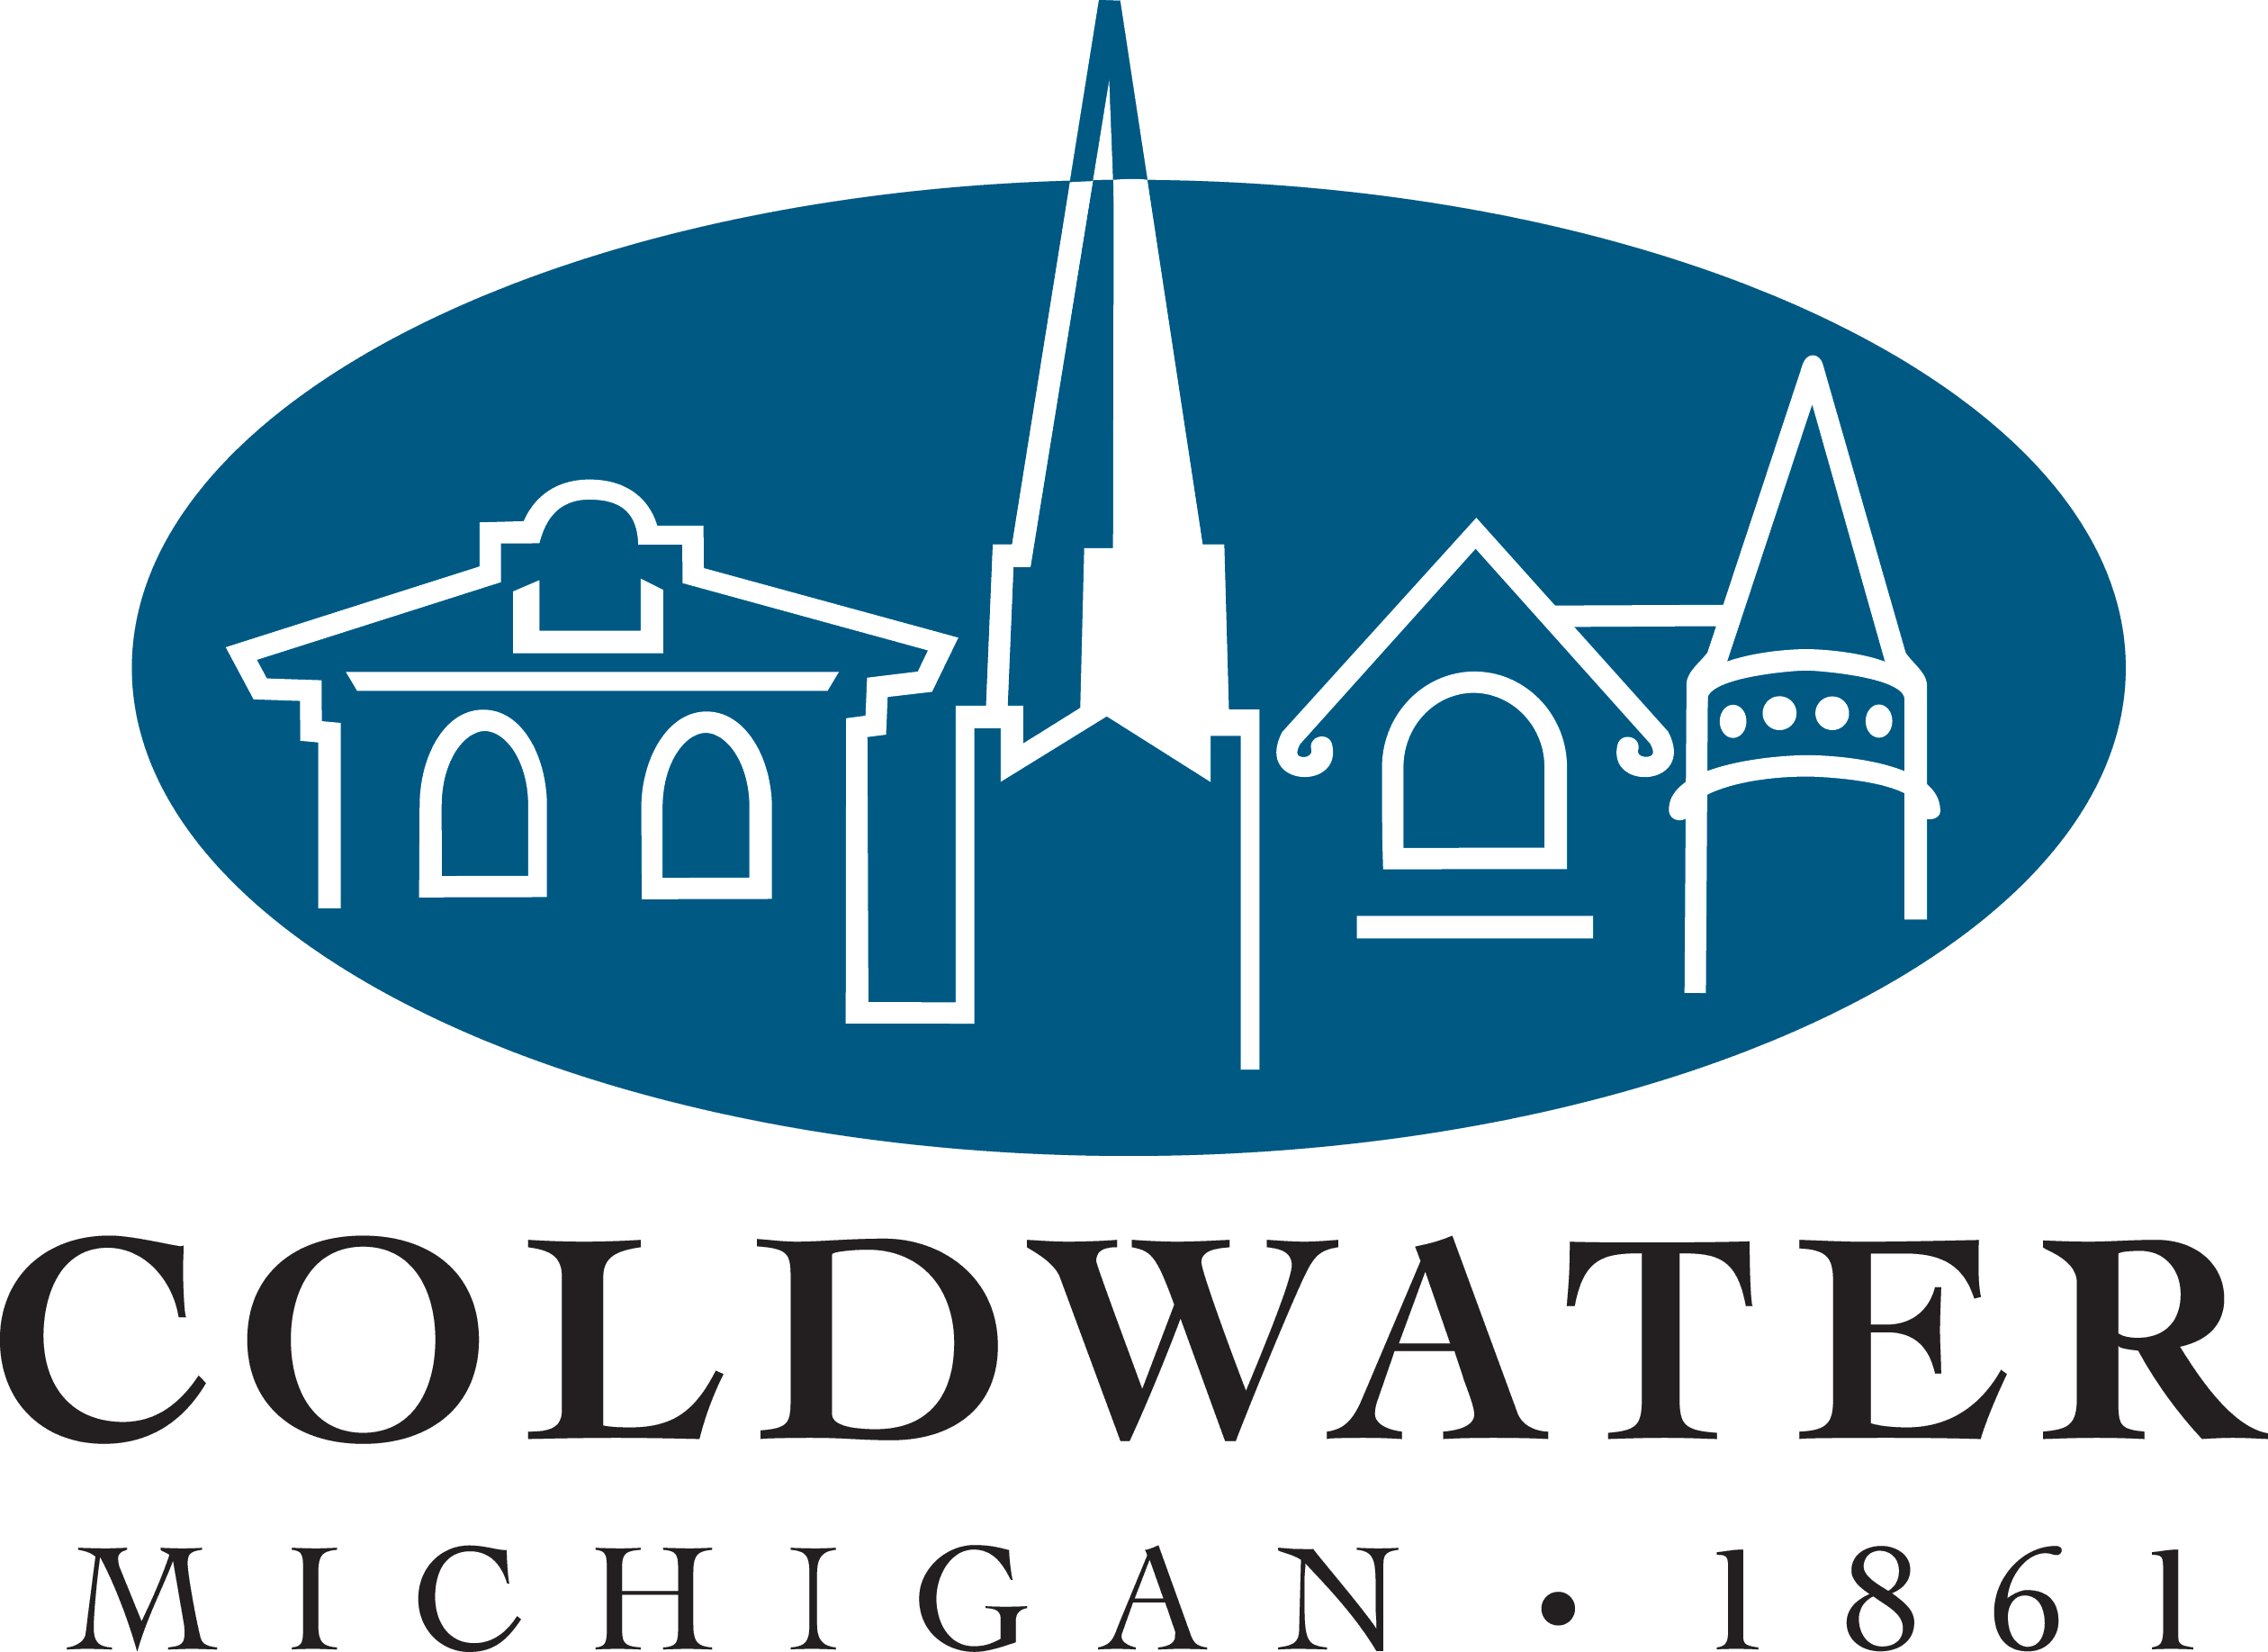 city_of_coldwater_regular_logo